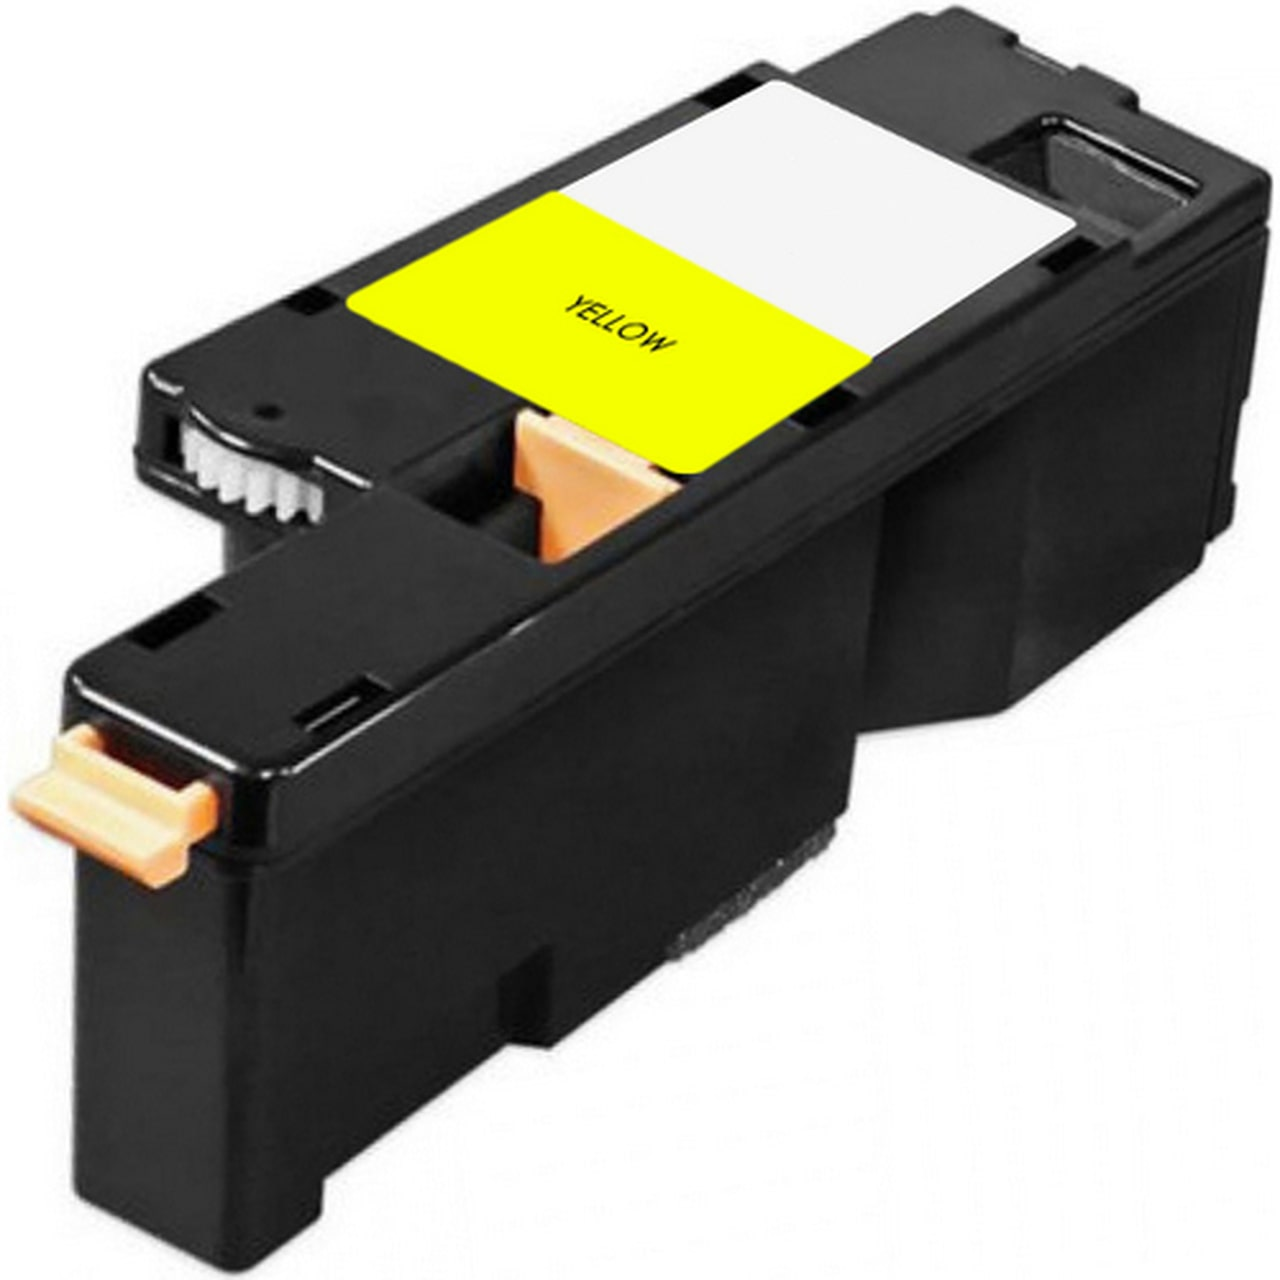 593-BBJW Toner Cartridge - Dell Compatible (Yellow)